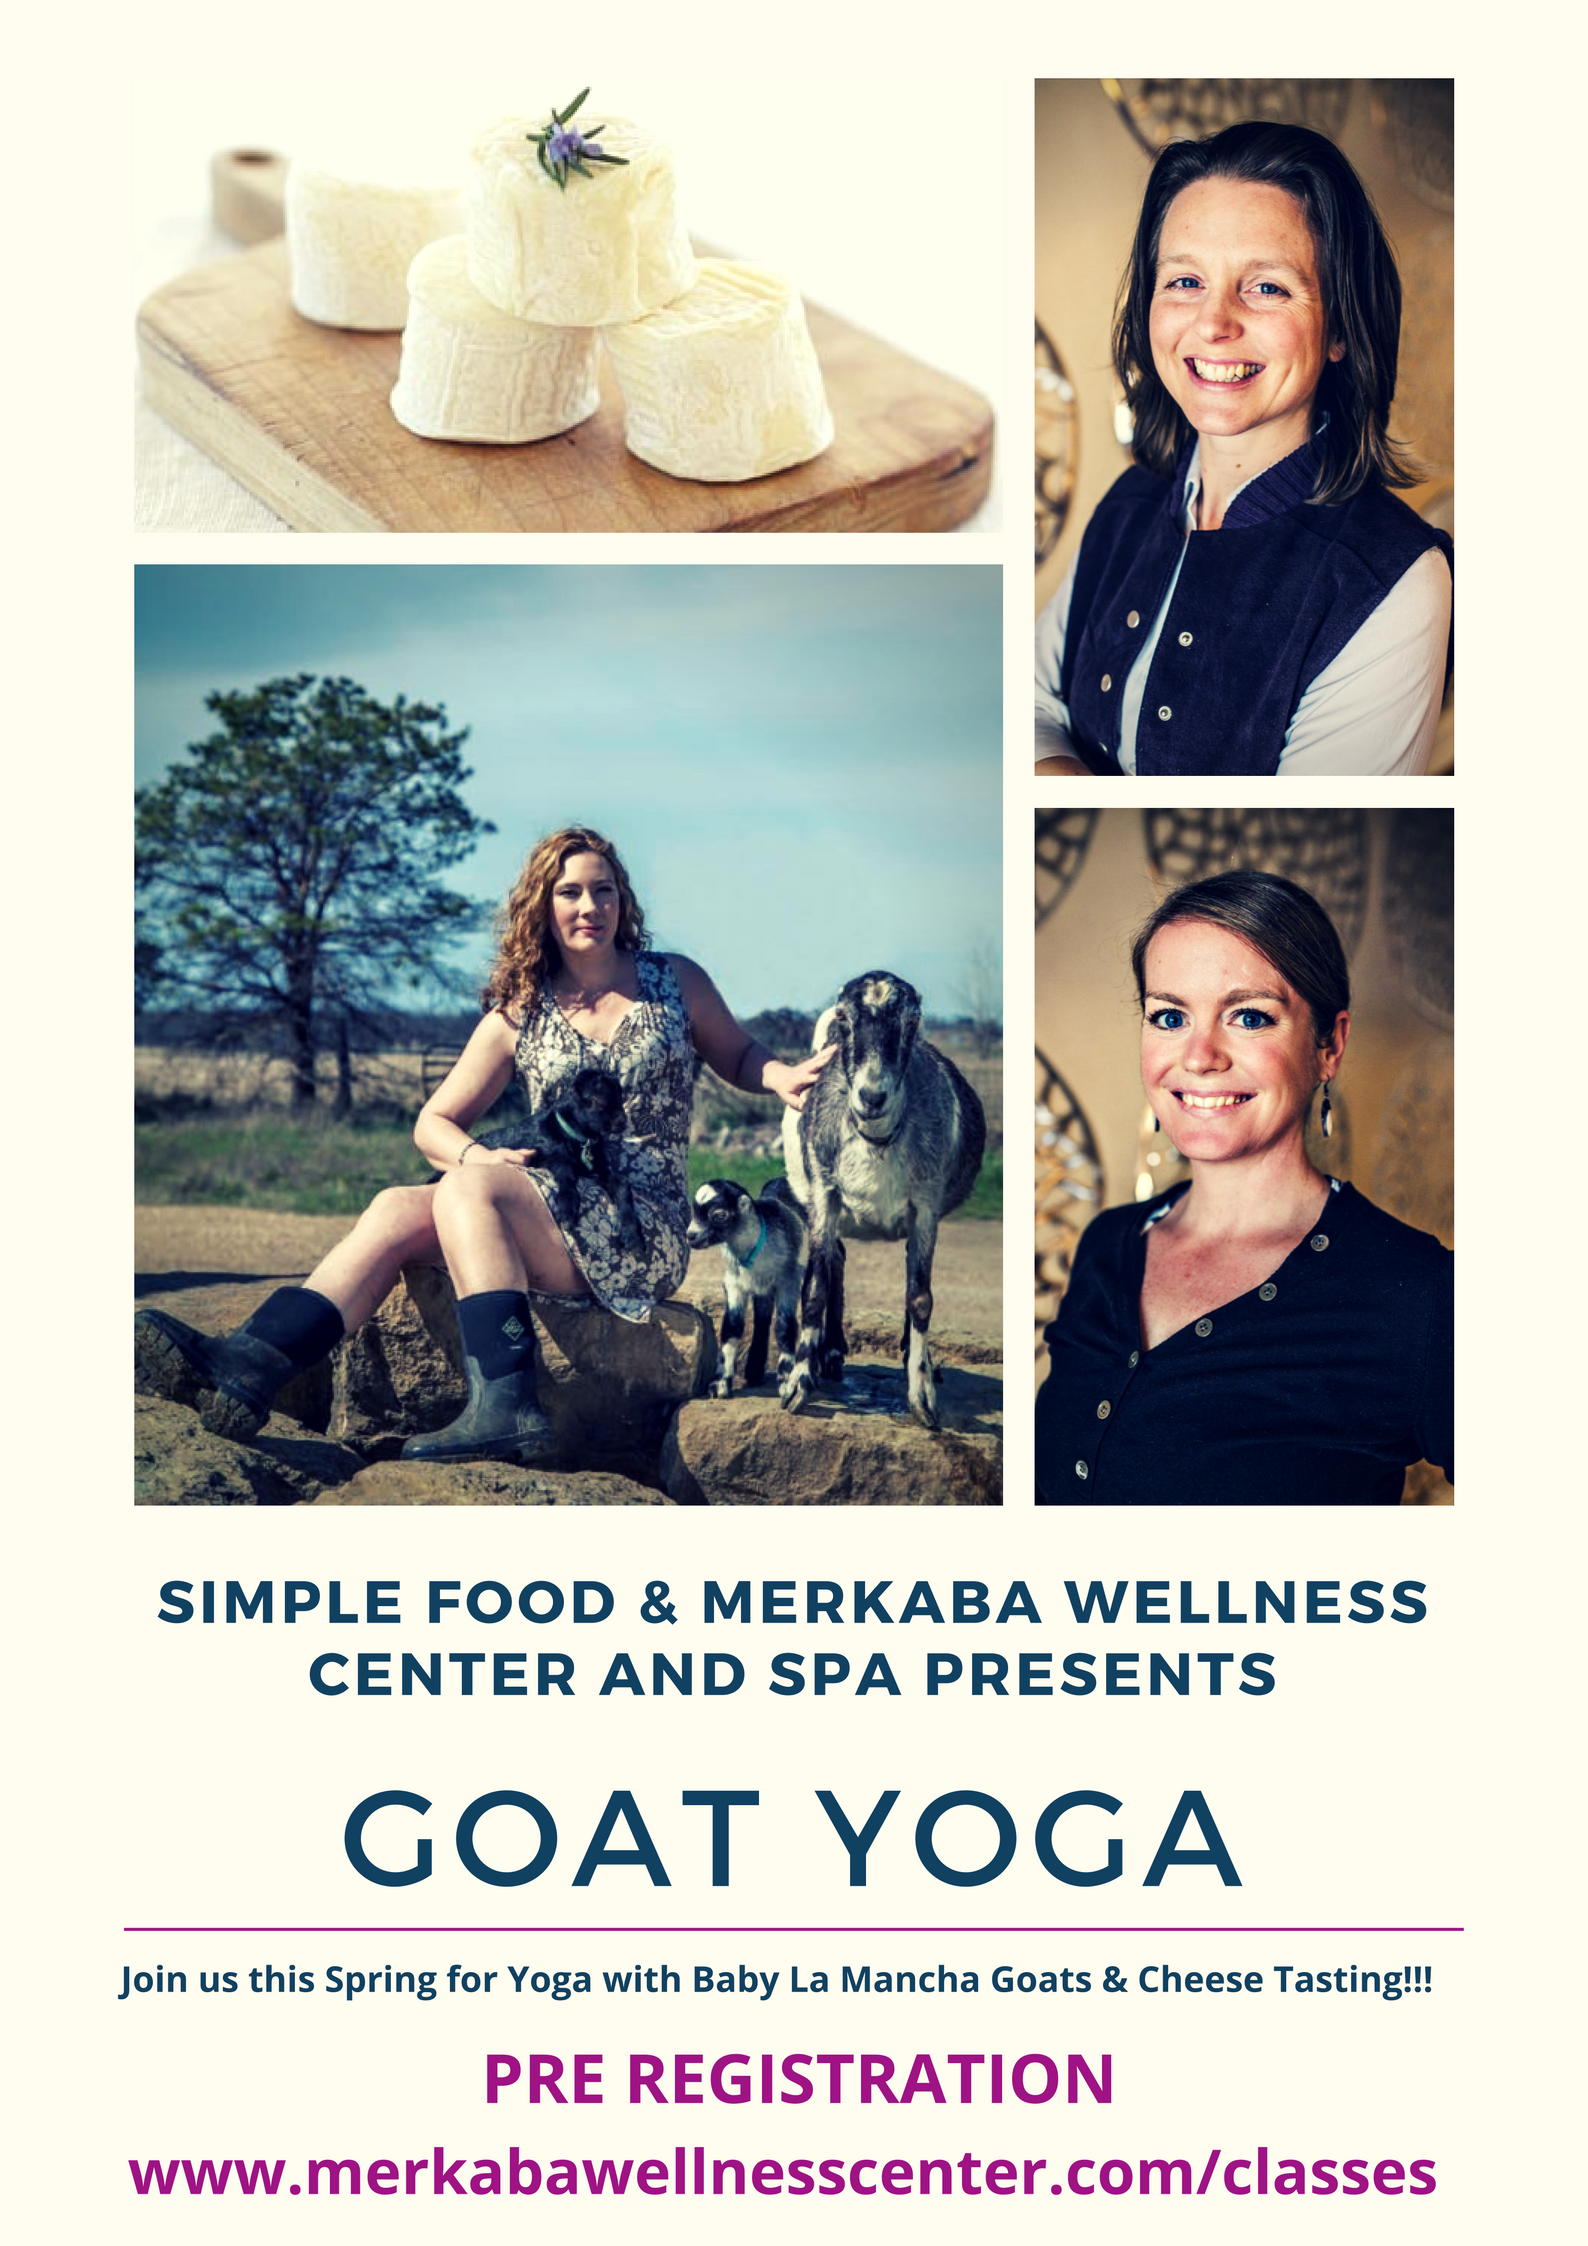 During Spring, join us for a special treat, Yoga in the country with Baby Goats and Cheese Tasting from Simple Food. Your Practitioner will guide you through classic empowering and relaxing yoga poses. Your body becomes a playground for goats just born into this world. It's a circle of fun and healing that will open your heart. Completely serious, incredibly hilarious, and everything in between. Each class ends with Simple Food's, specially crafted Goat Cheese and Milk tasting. Bring your own Yoga mat.  This class is SOLD OUT. Please click the link below for future dates.   75 Minute Class with Cheese tasting $45 /without Cheese tasting $35